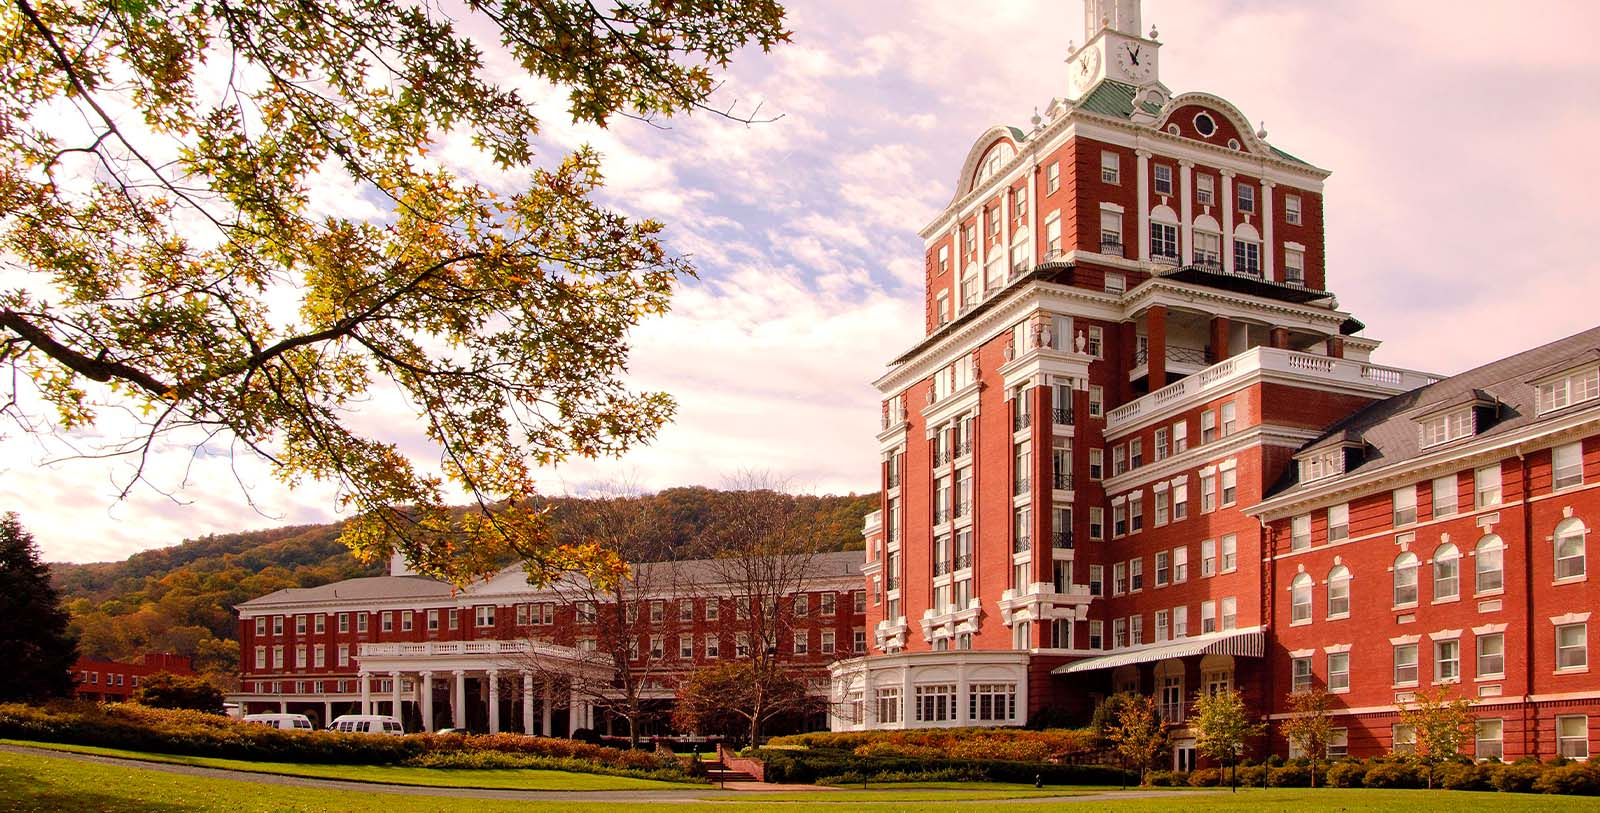 Image of Hotel Exterior The Omni Homestead Resort, 1766, Member of Historic Hotels of America, in Hot Springs, Virginia, Special Offers, Discounted Rates, Families, Romantic Escape, Honeymoons, Anniversaries, Reunions